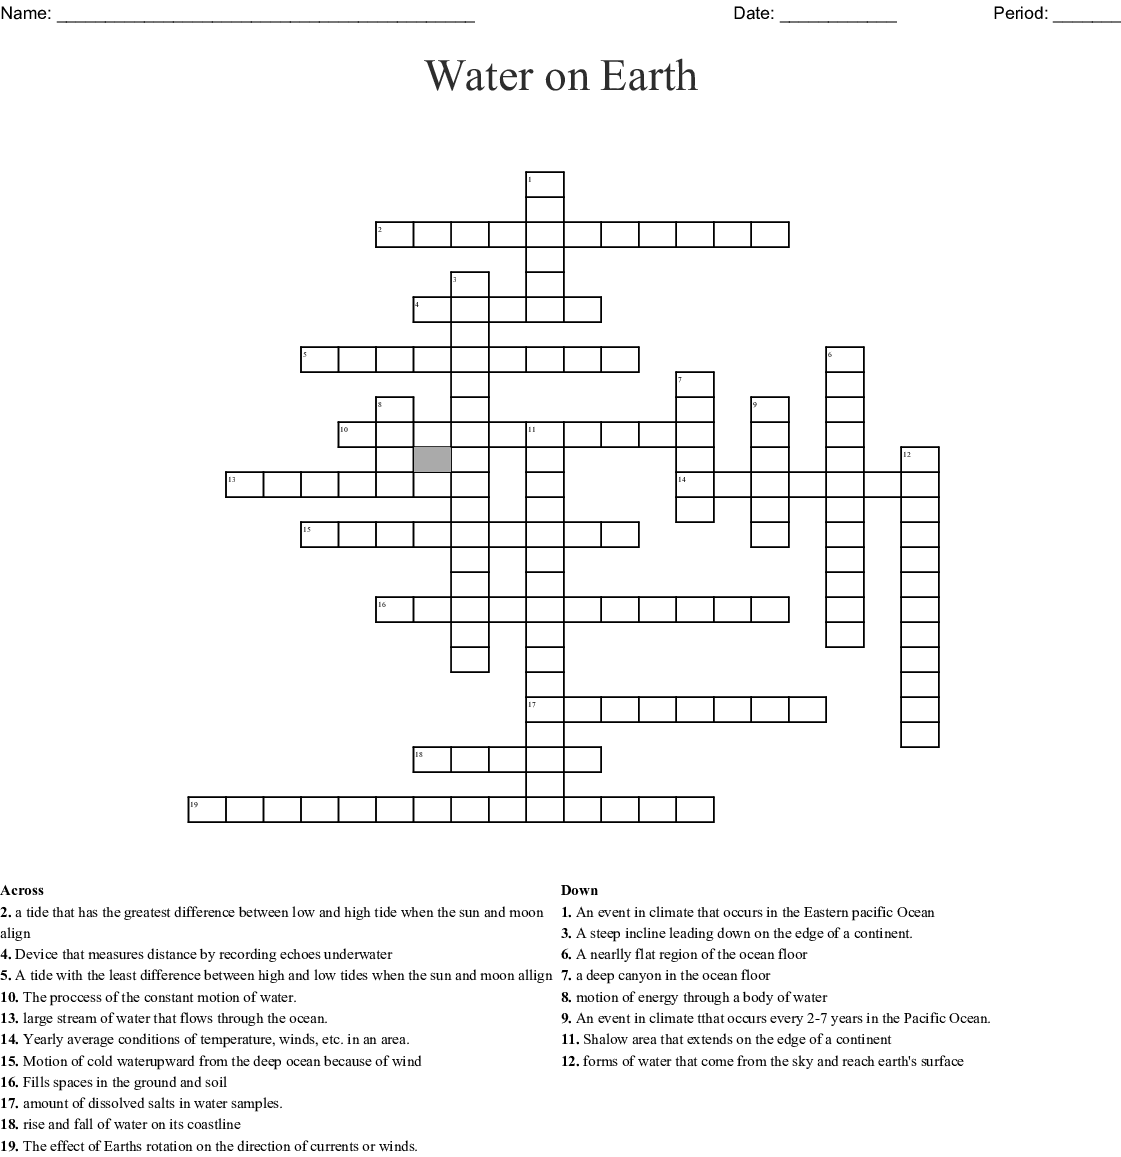 Water On Earth Word Search